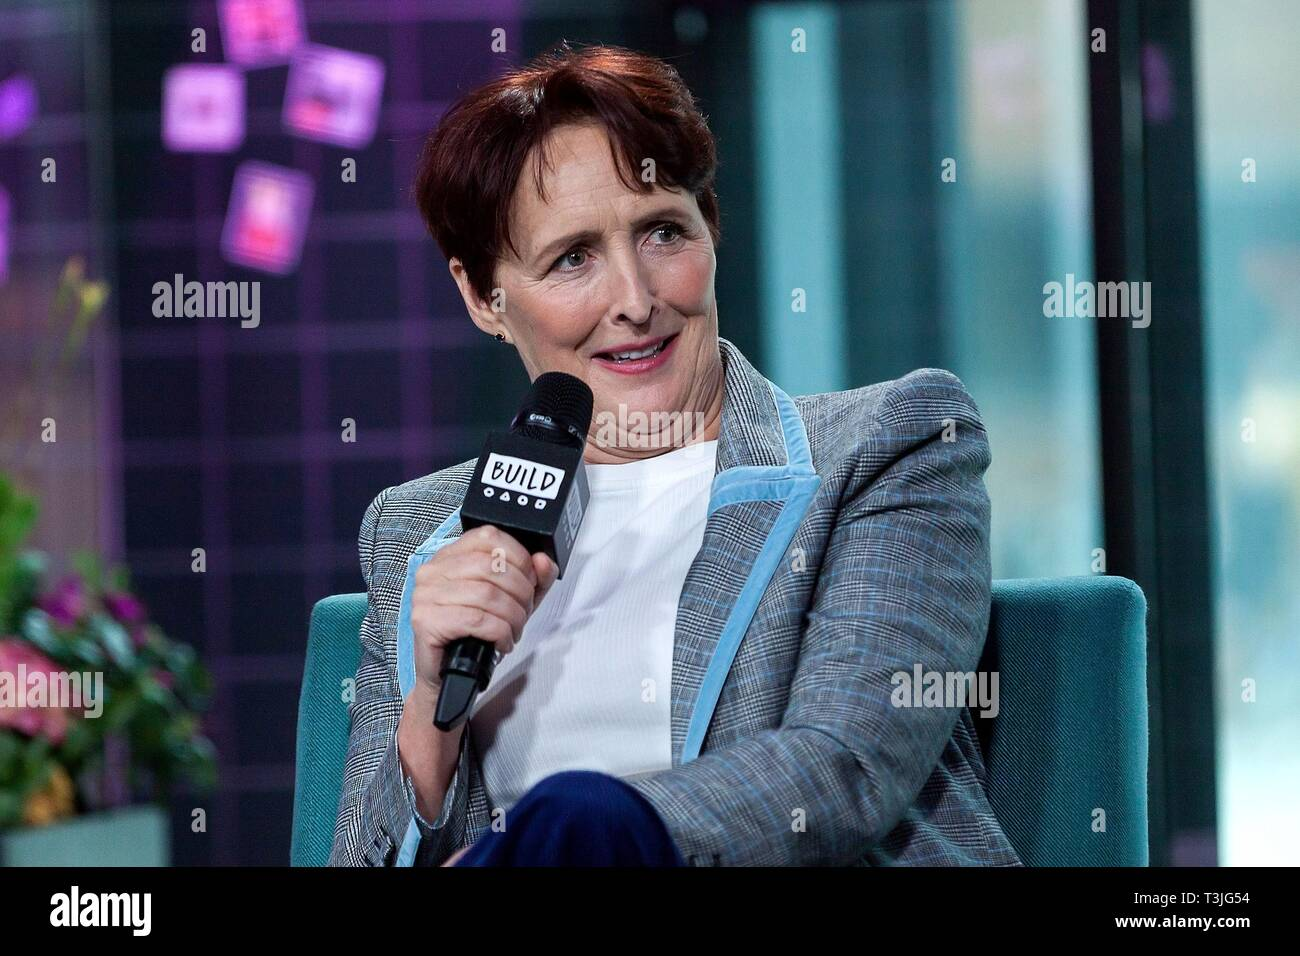 New York, NY, USA. 9th Apr, 2019. Fiona Shaw inside for AOL Build Series Celebrity Candids - TUE, AOL Build Series, New York, NY April 9, 2019. Credit: Steve Mack/Everett Collection/Alamy Live News - Stock Image